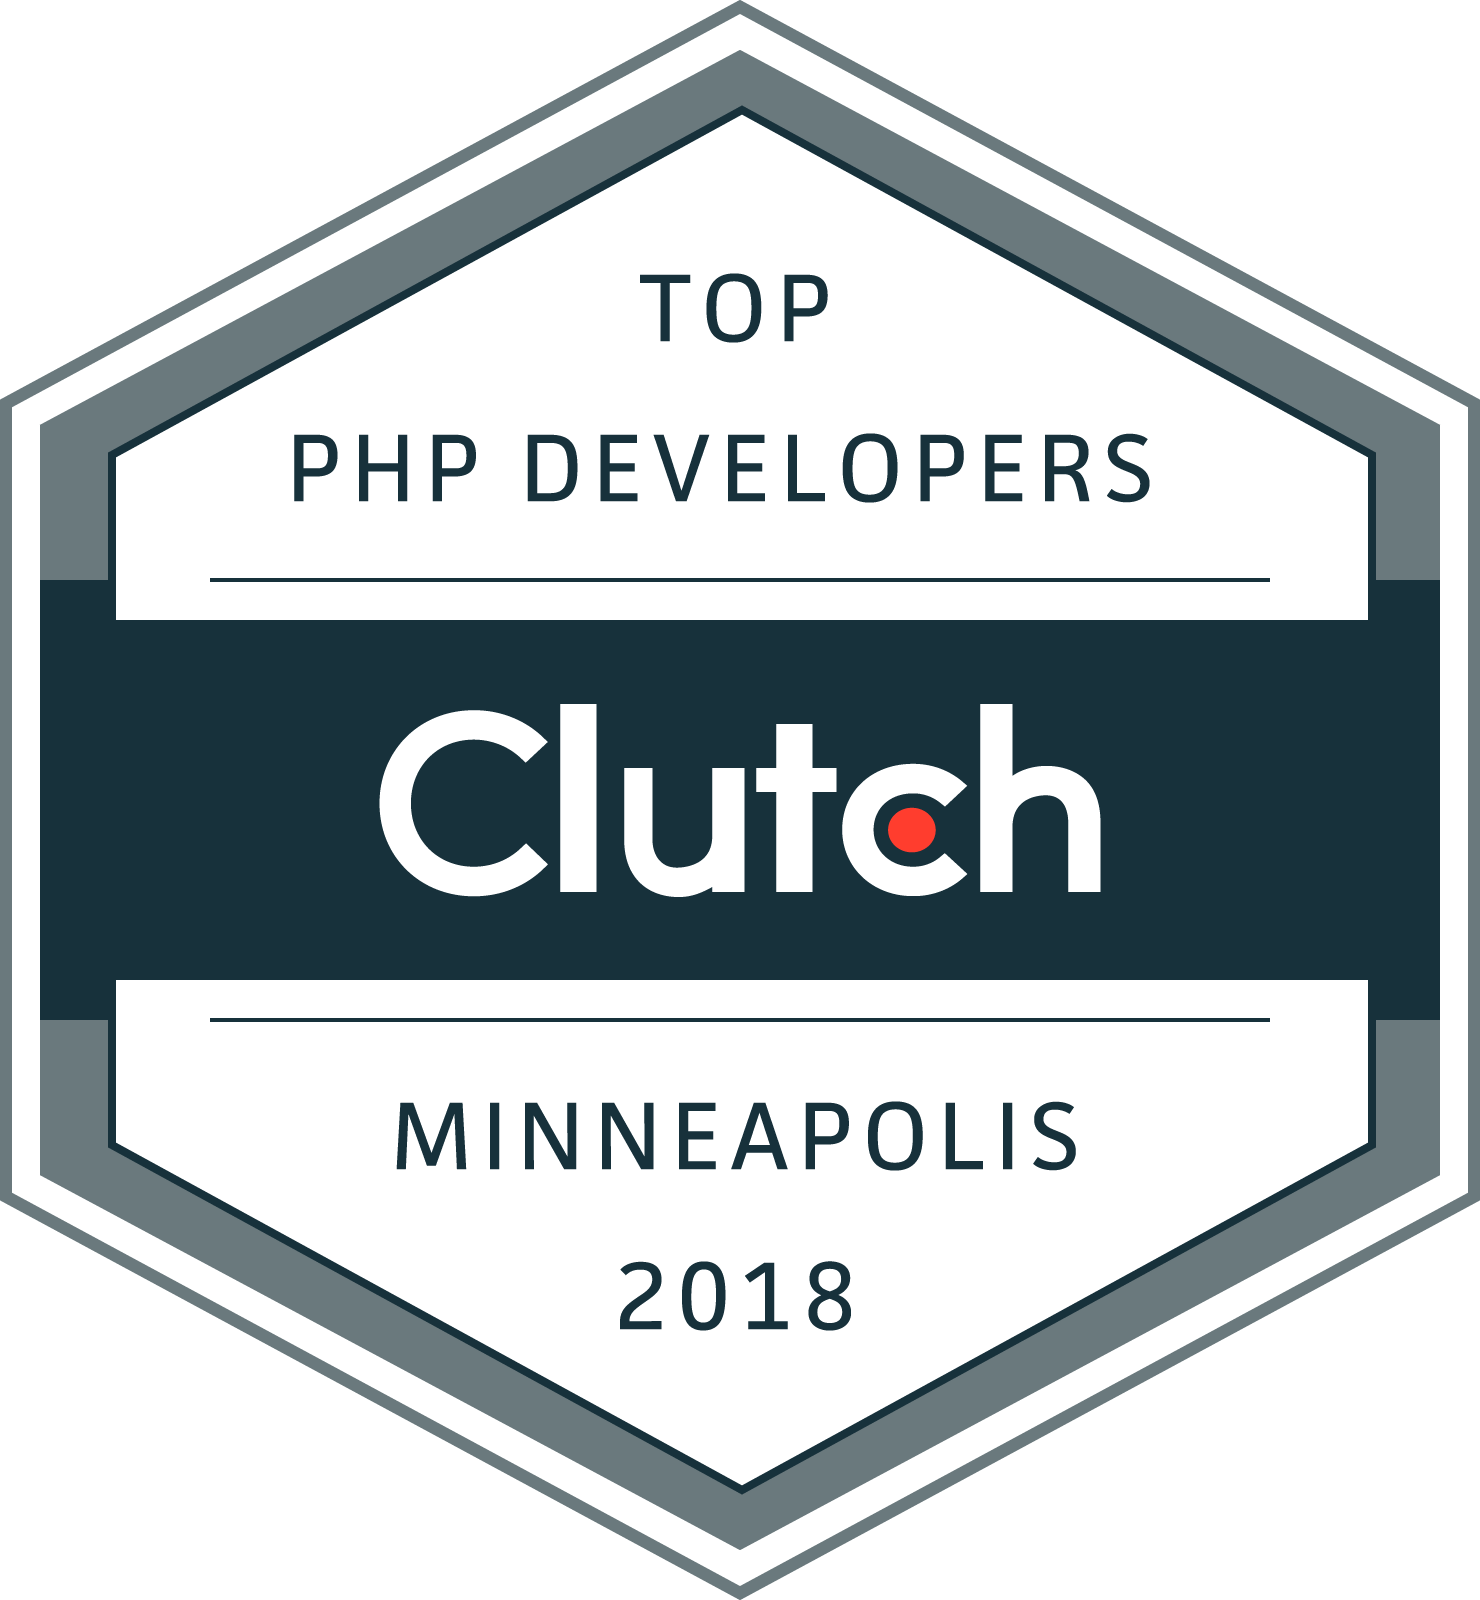 Top PHP Developers Minneapolis 2018